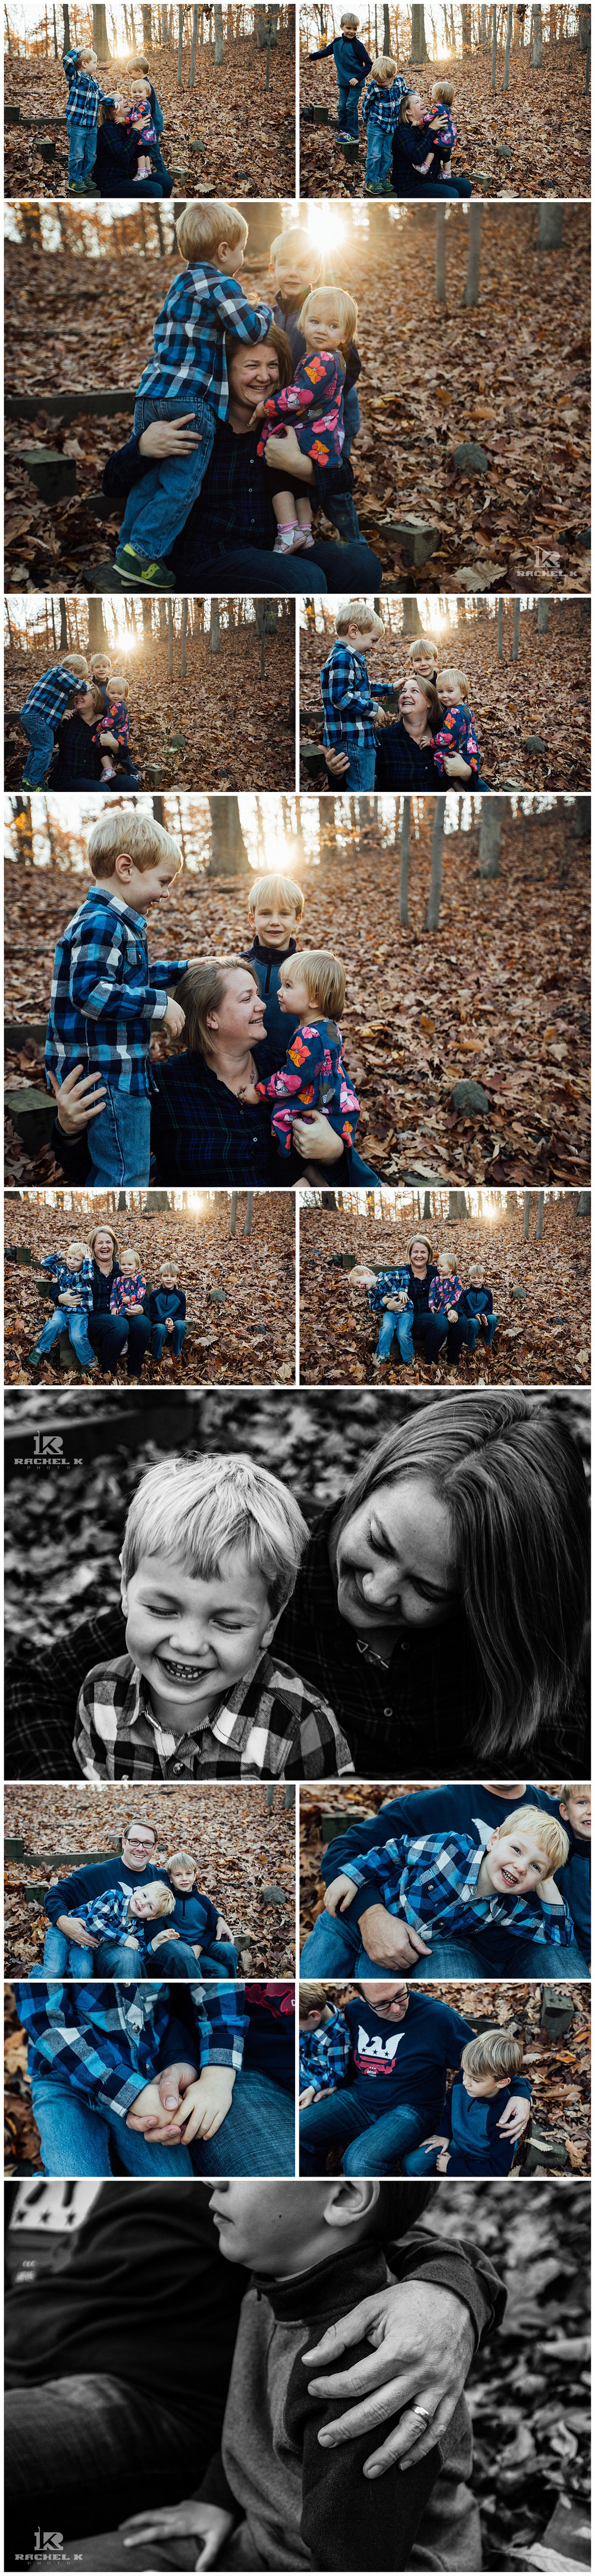 Centreville Virginia winter family session with three kids by Rachel K Photo